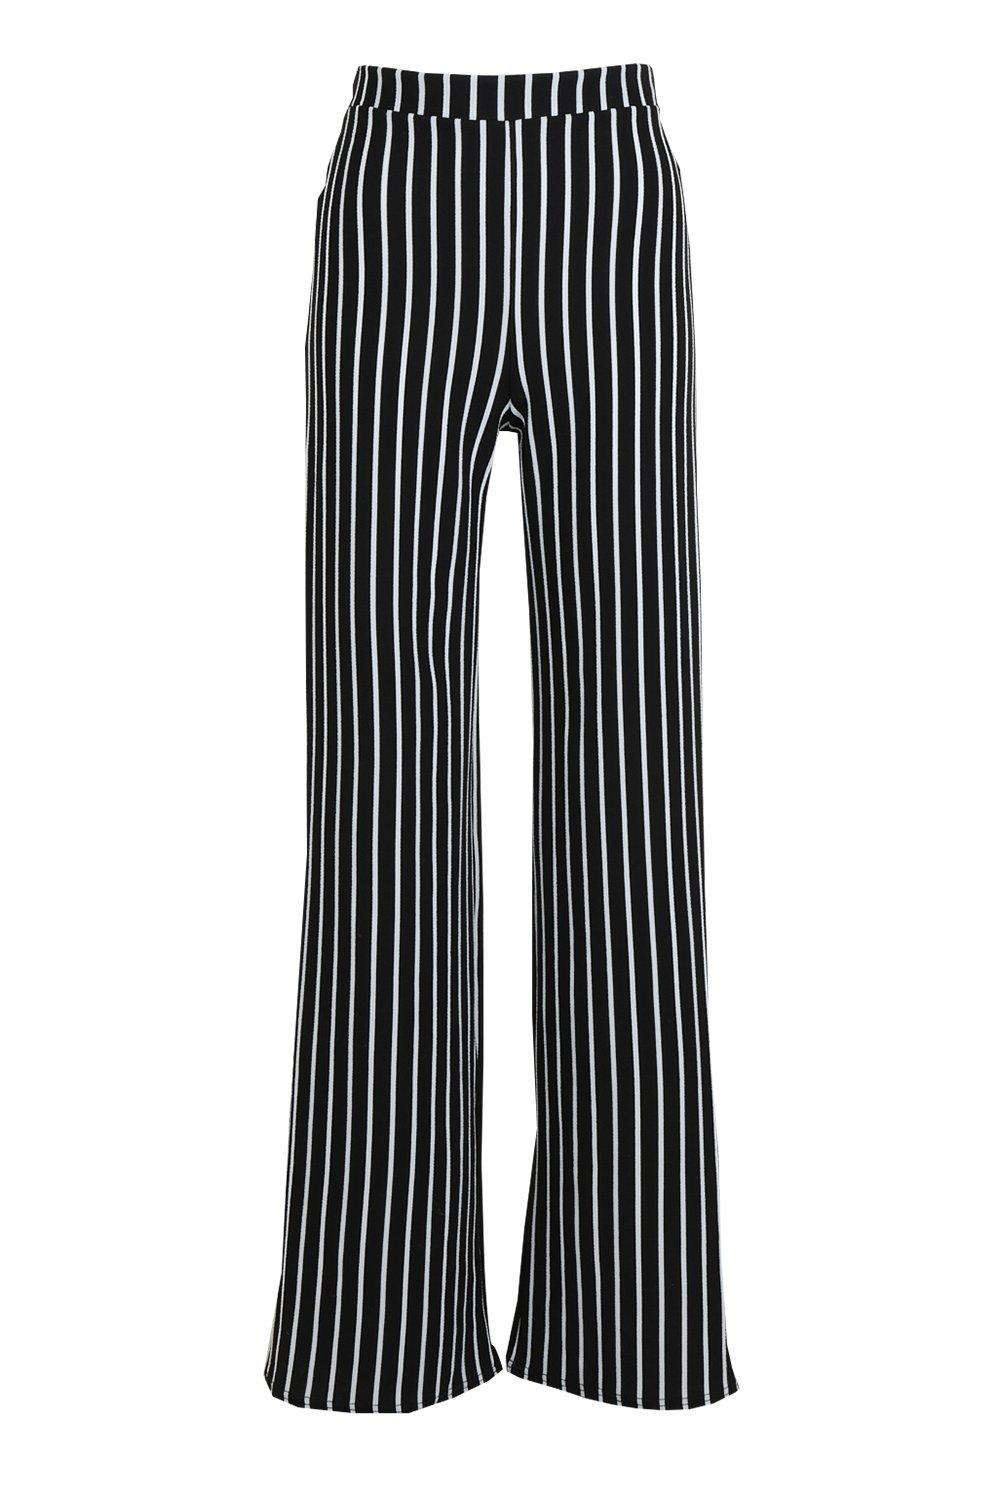 Tall Stripe Leg Wide Trousers black n0wYg0qr